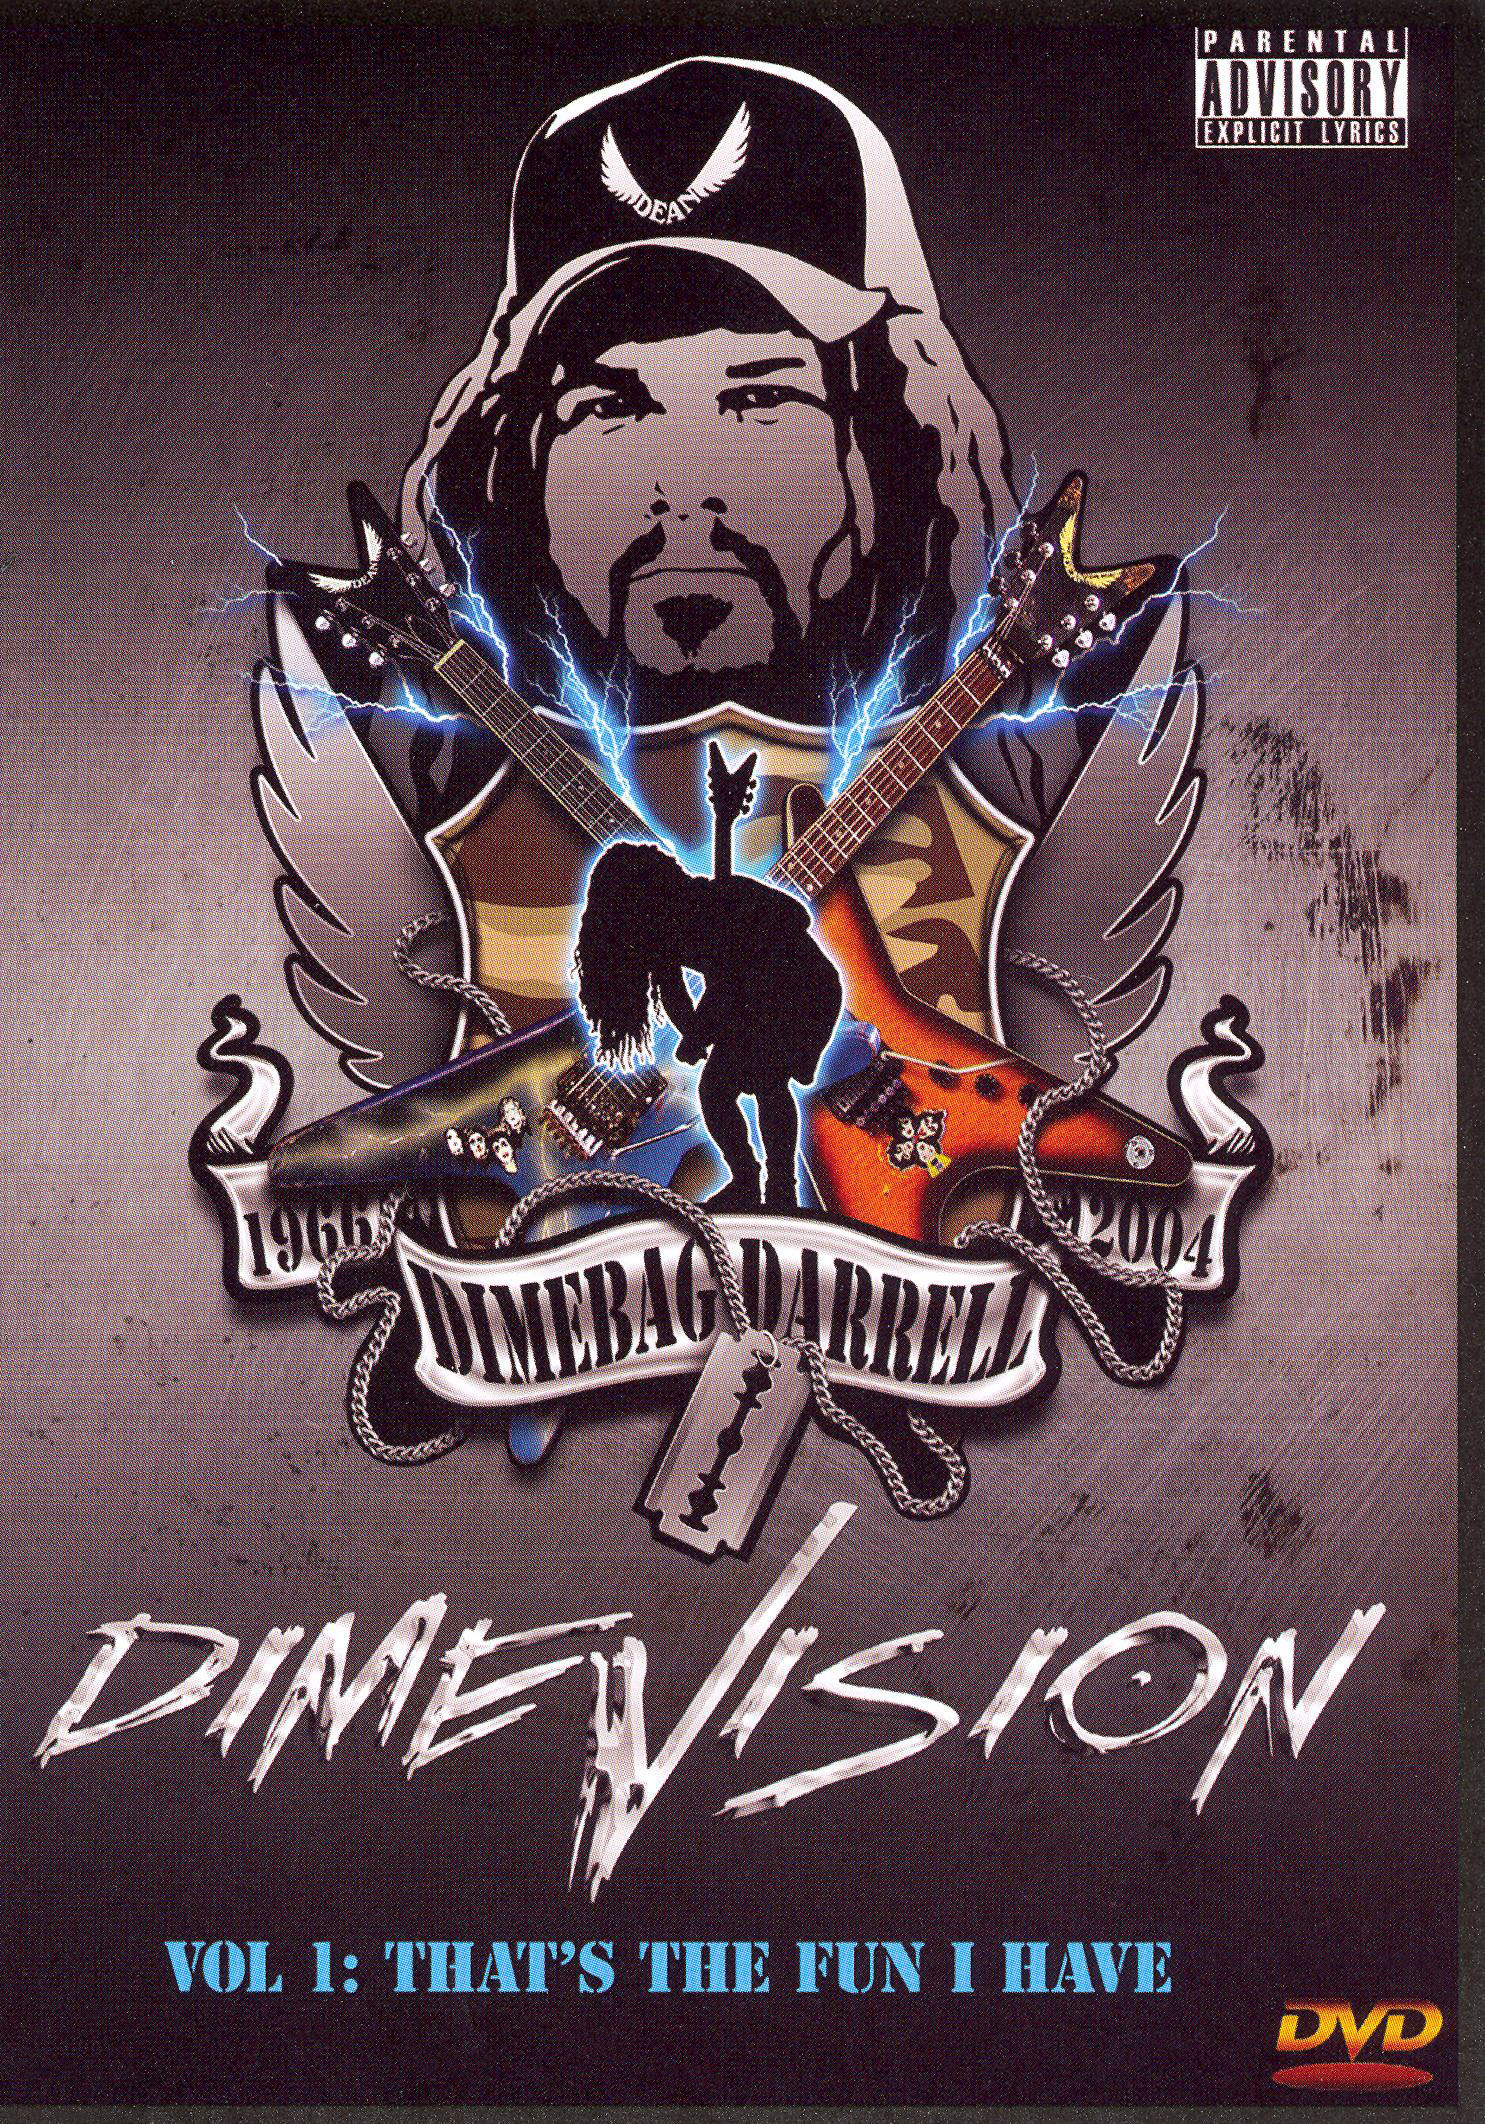 Dimevision, Vol. 1: That's the Fun I Have